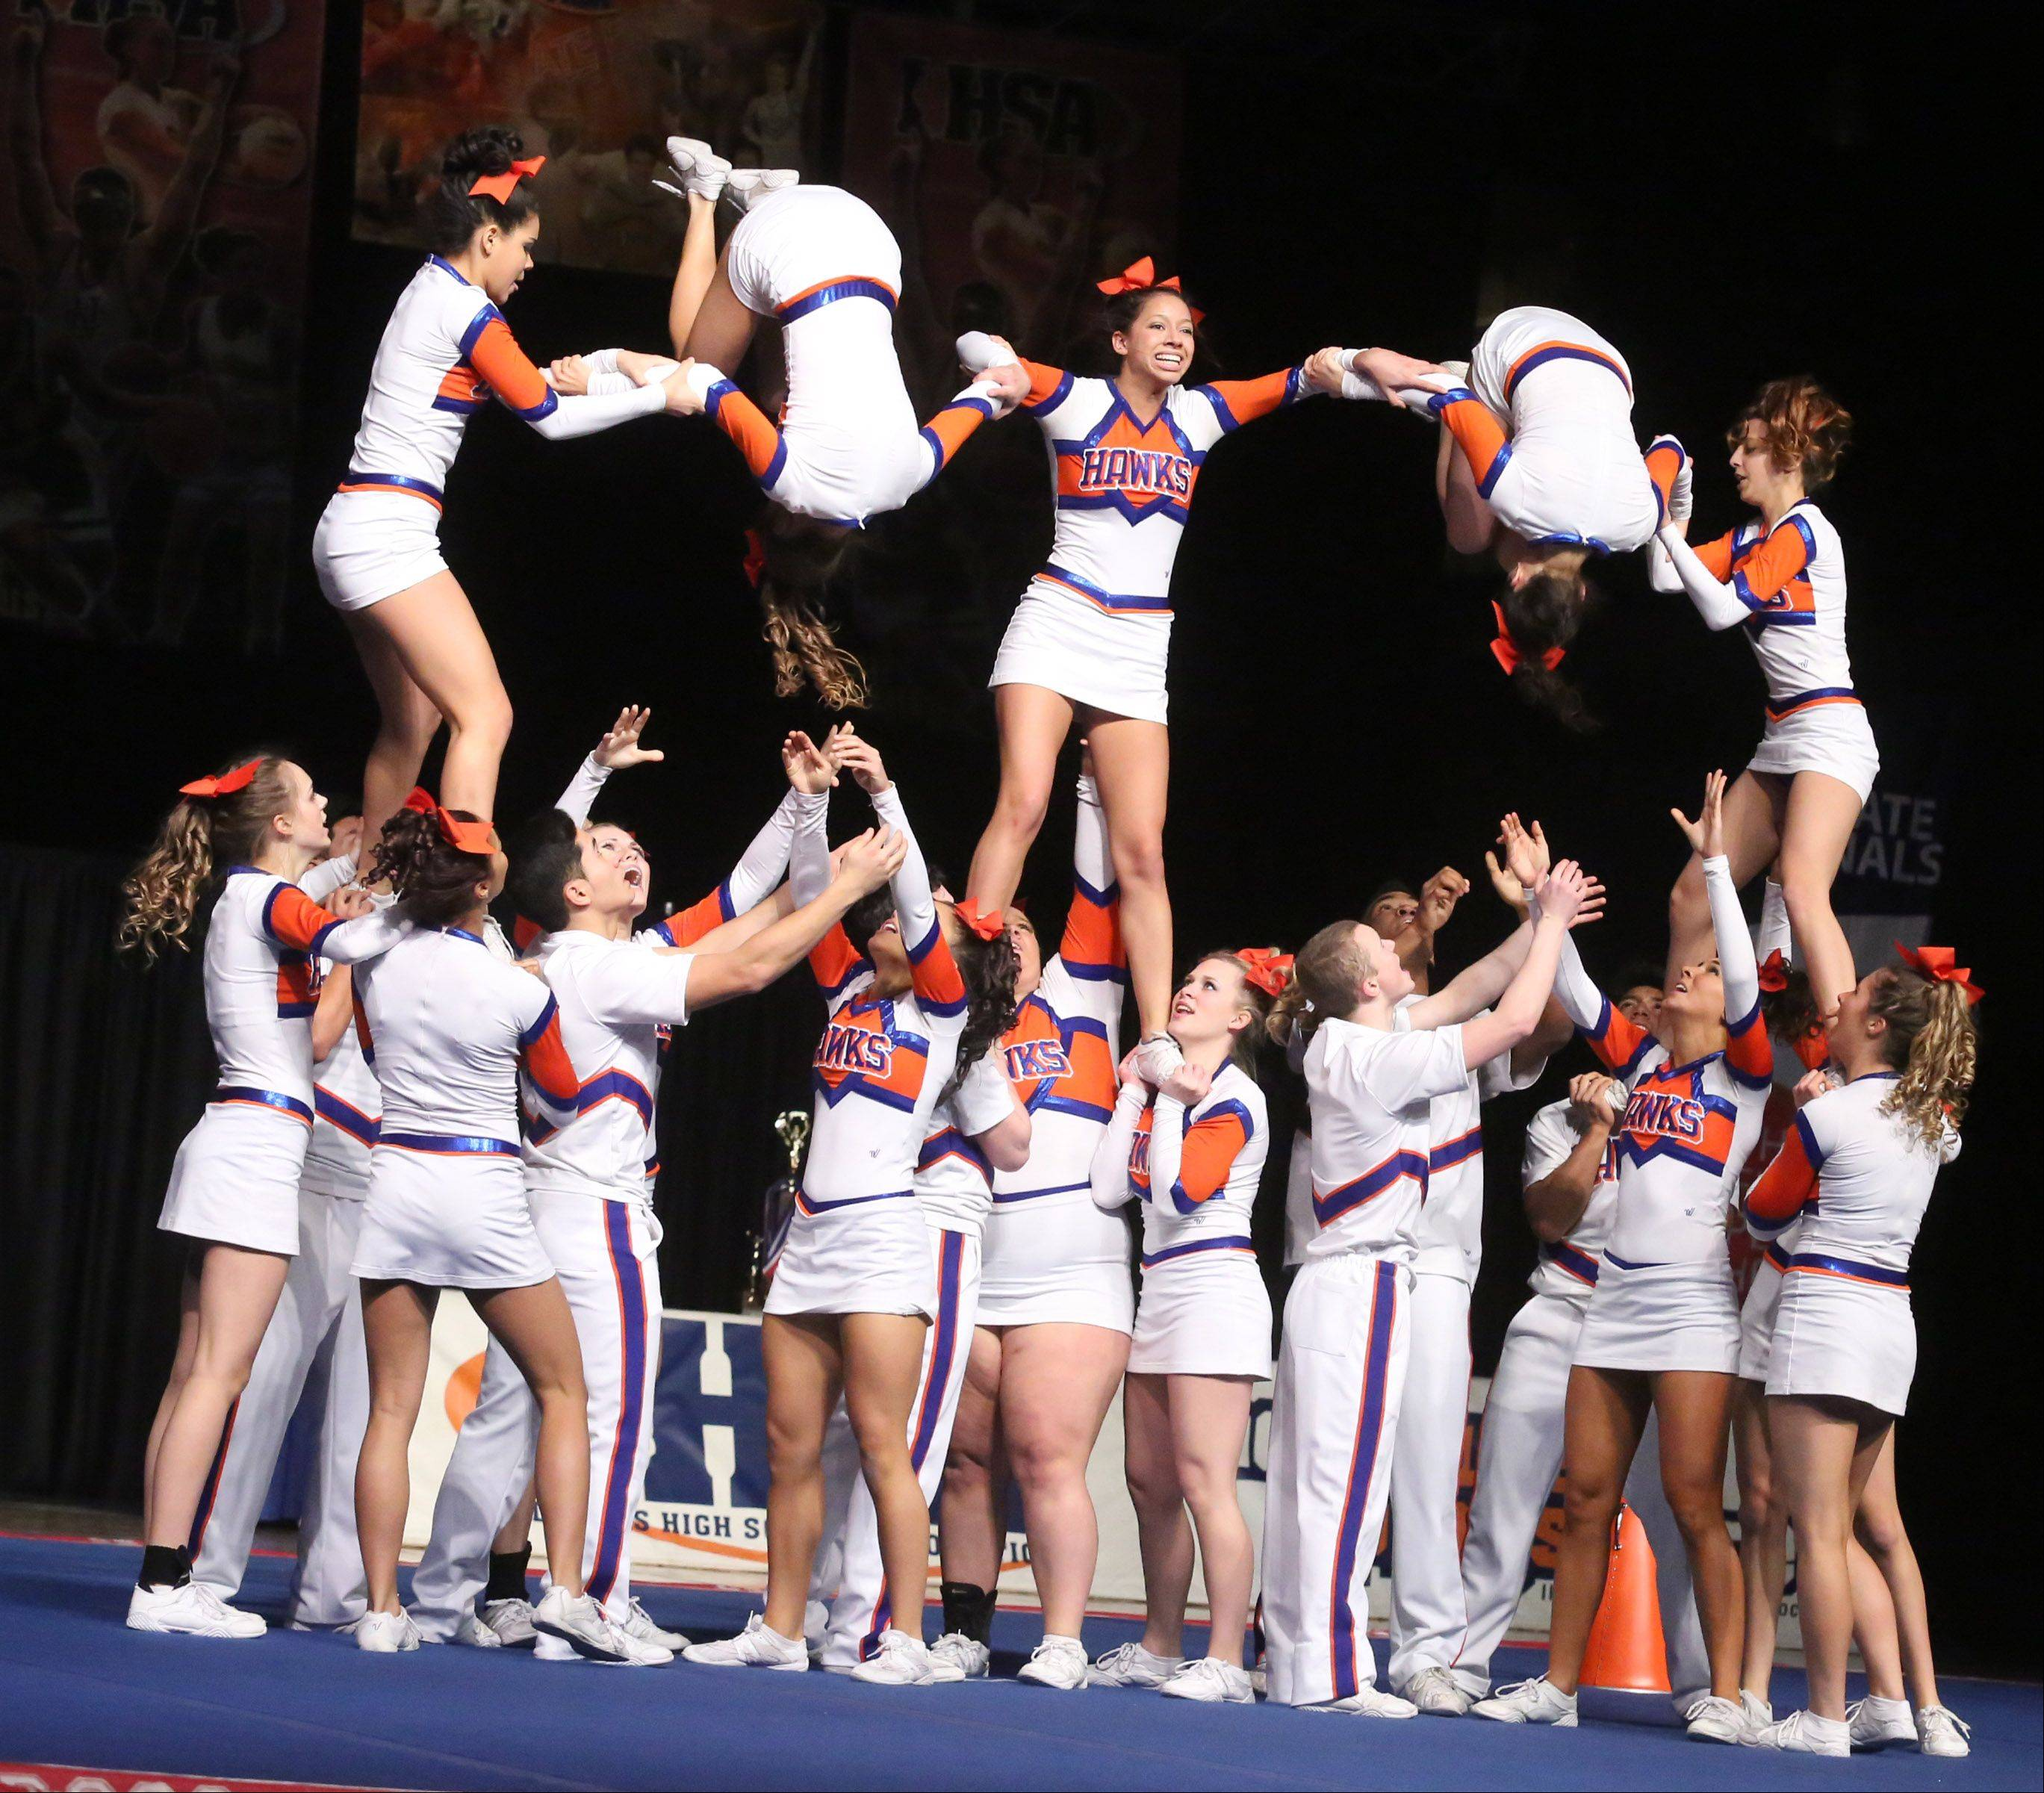 Hoffman Estates High School's cheer team performs in the coed team category.